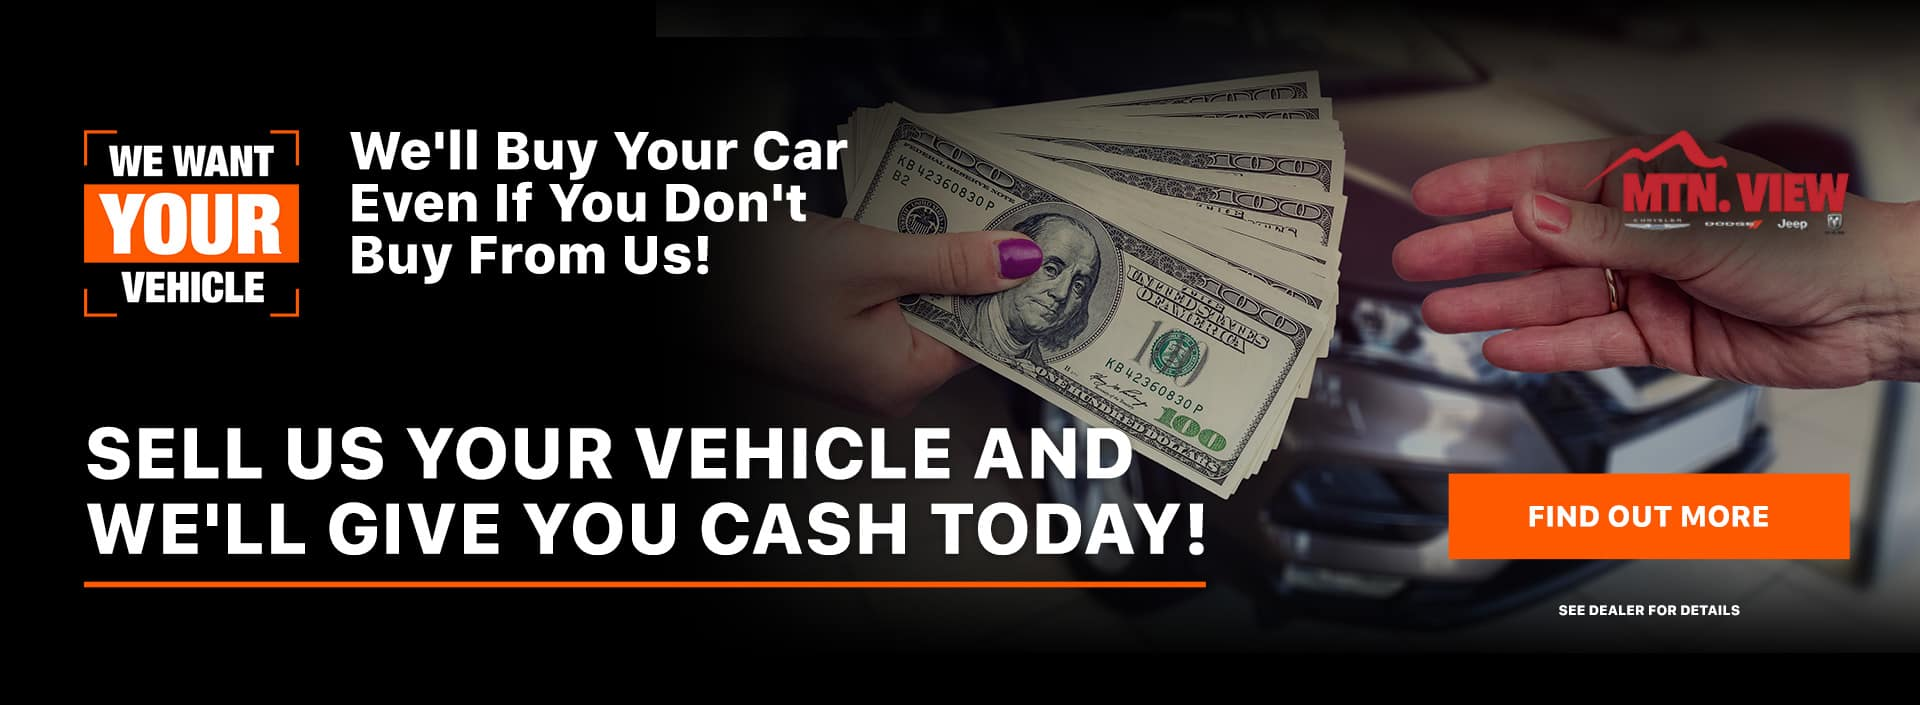 We'll Buy Your Car